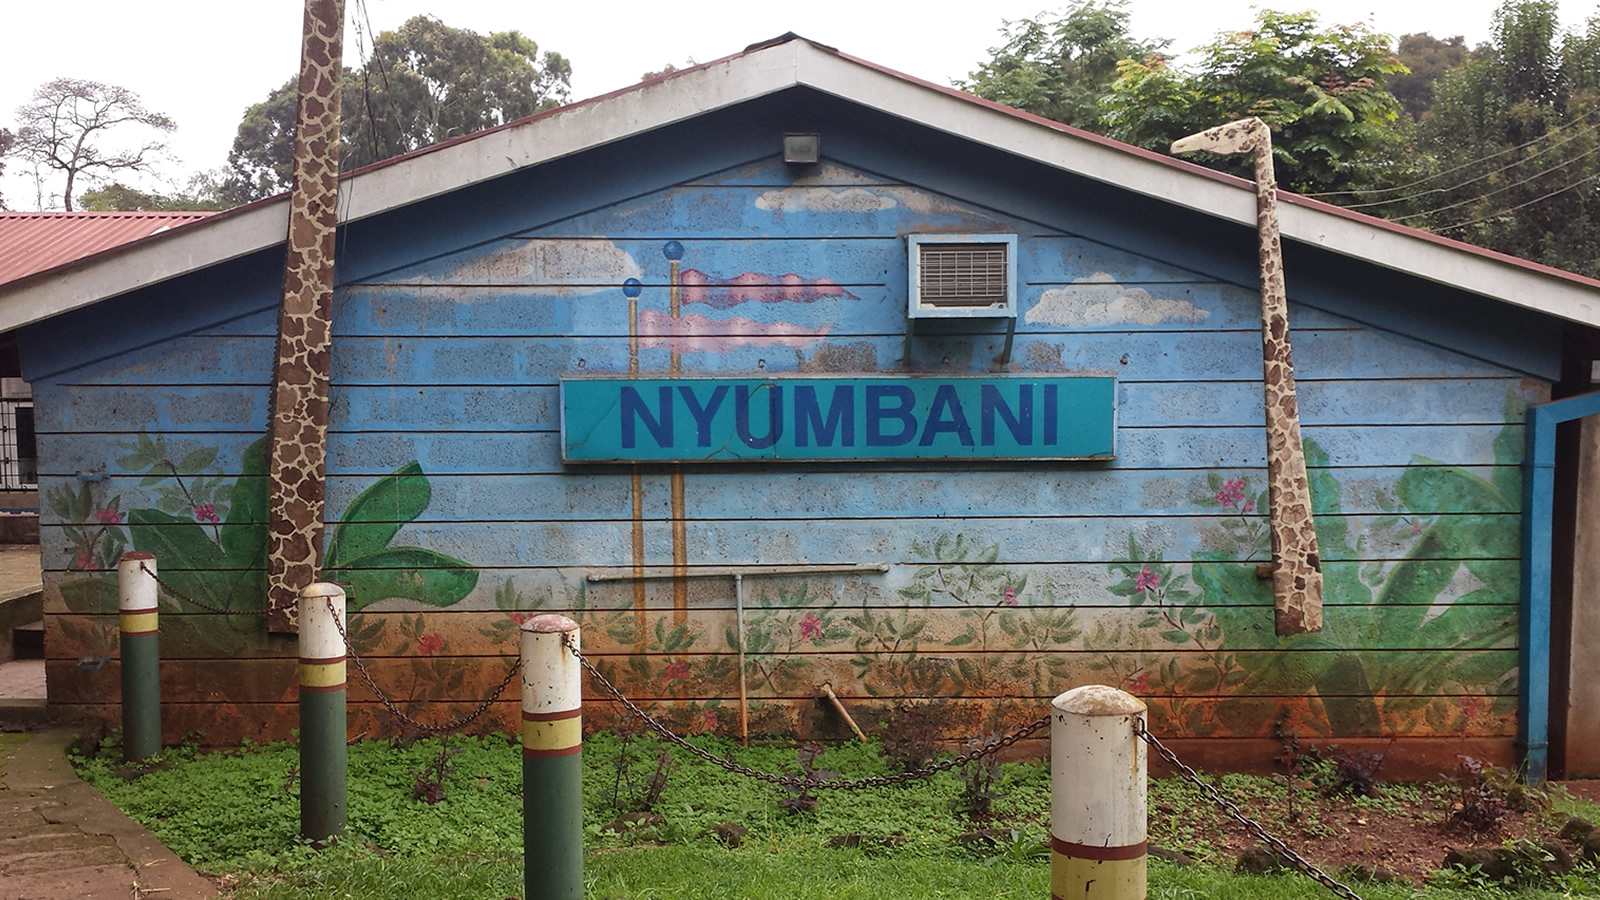 Nyumbani Building with Mural in Kenya